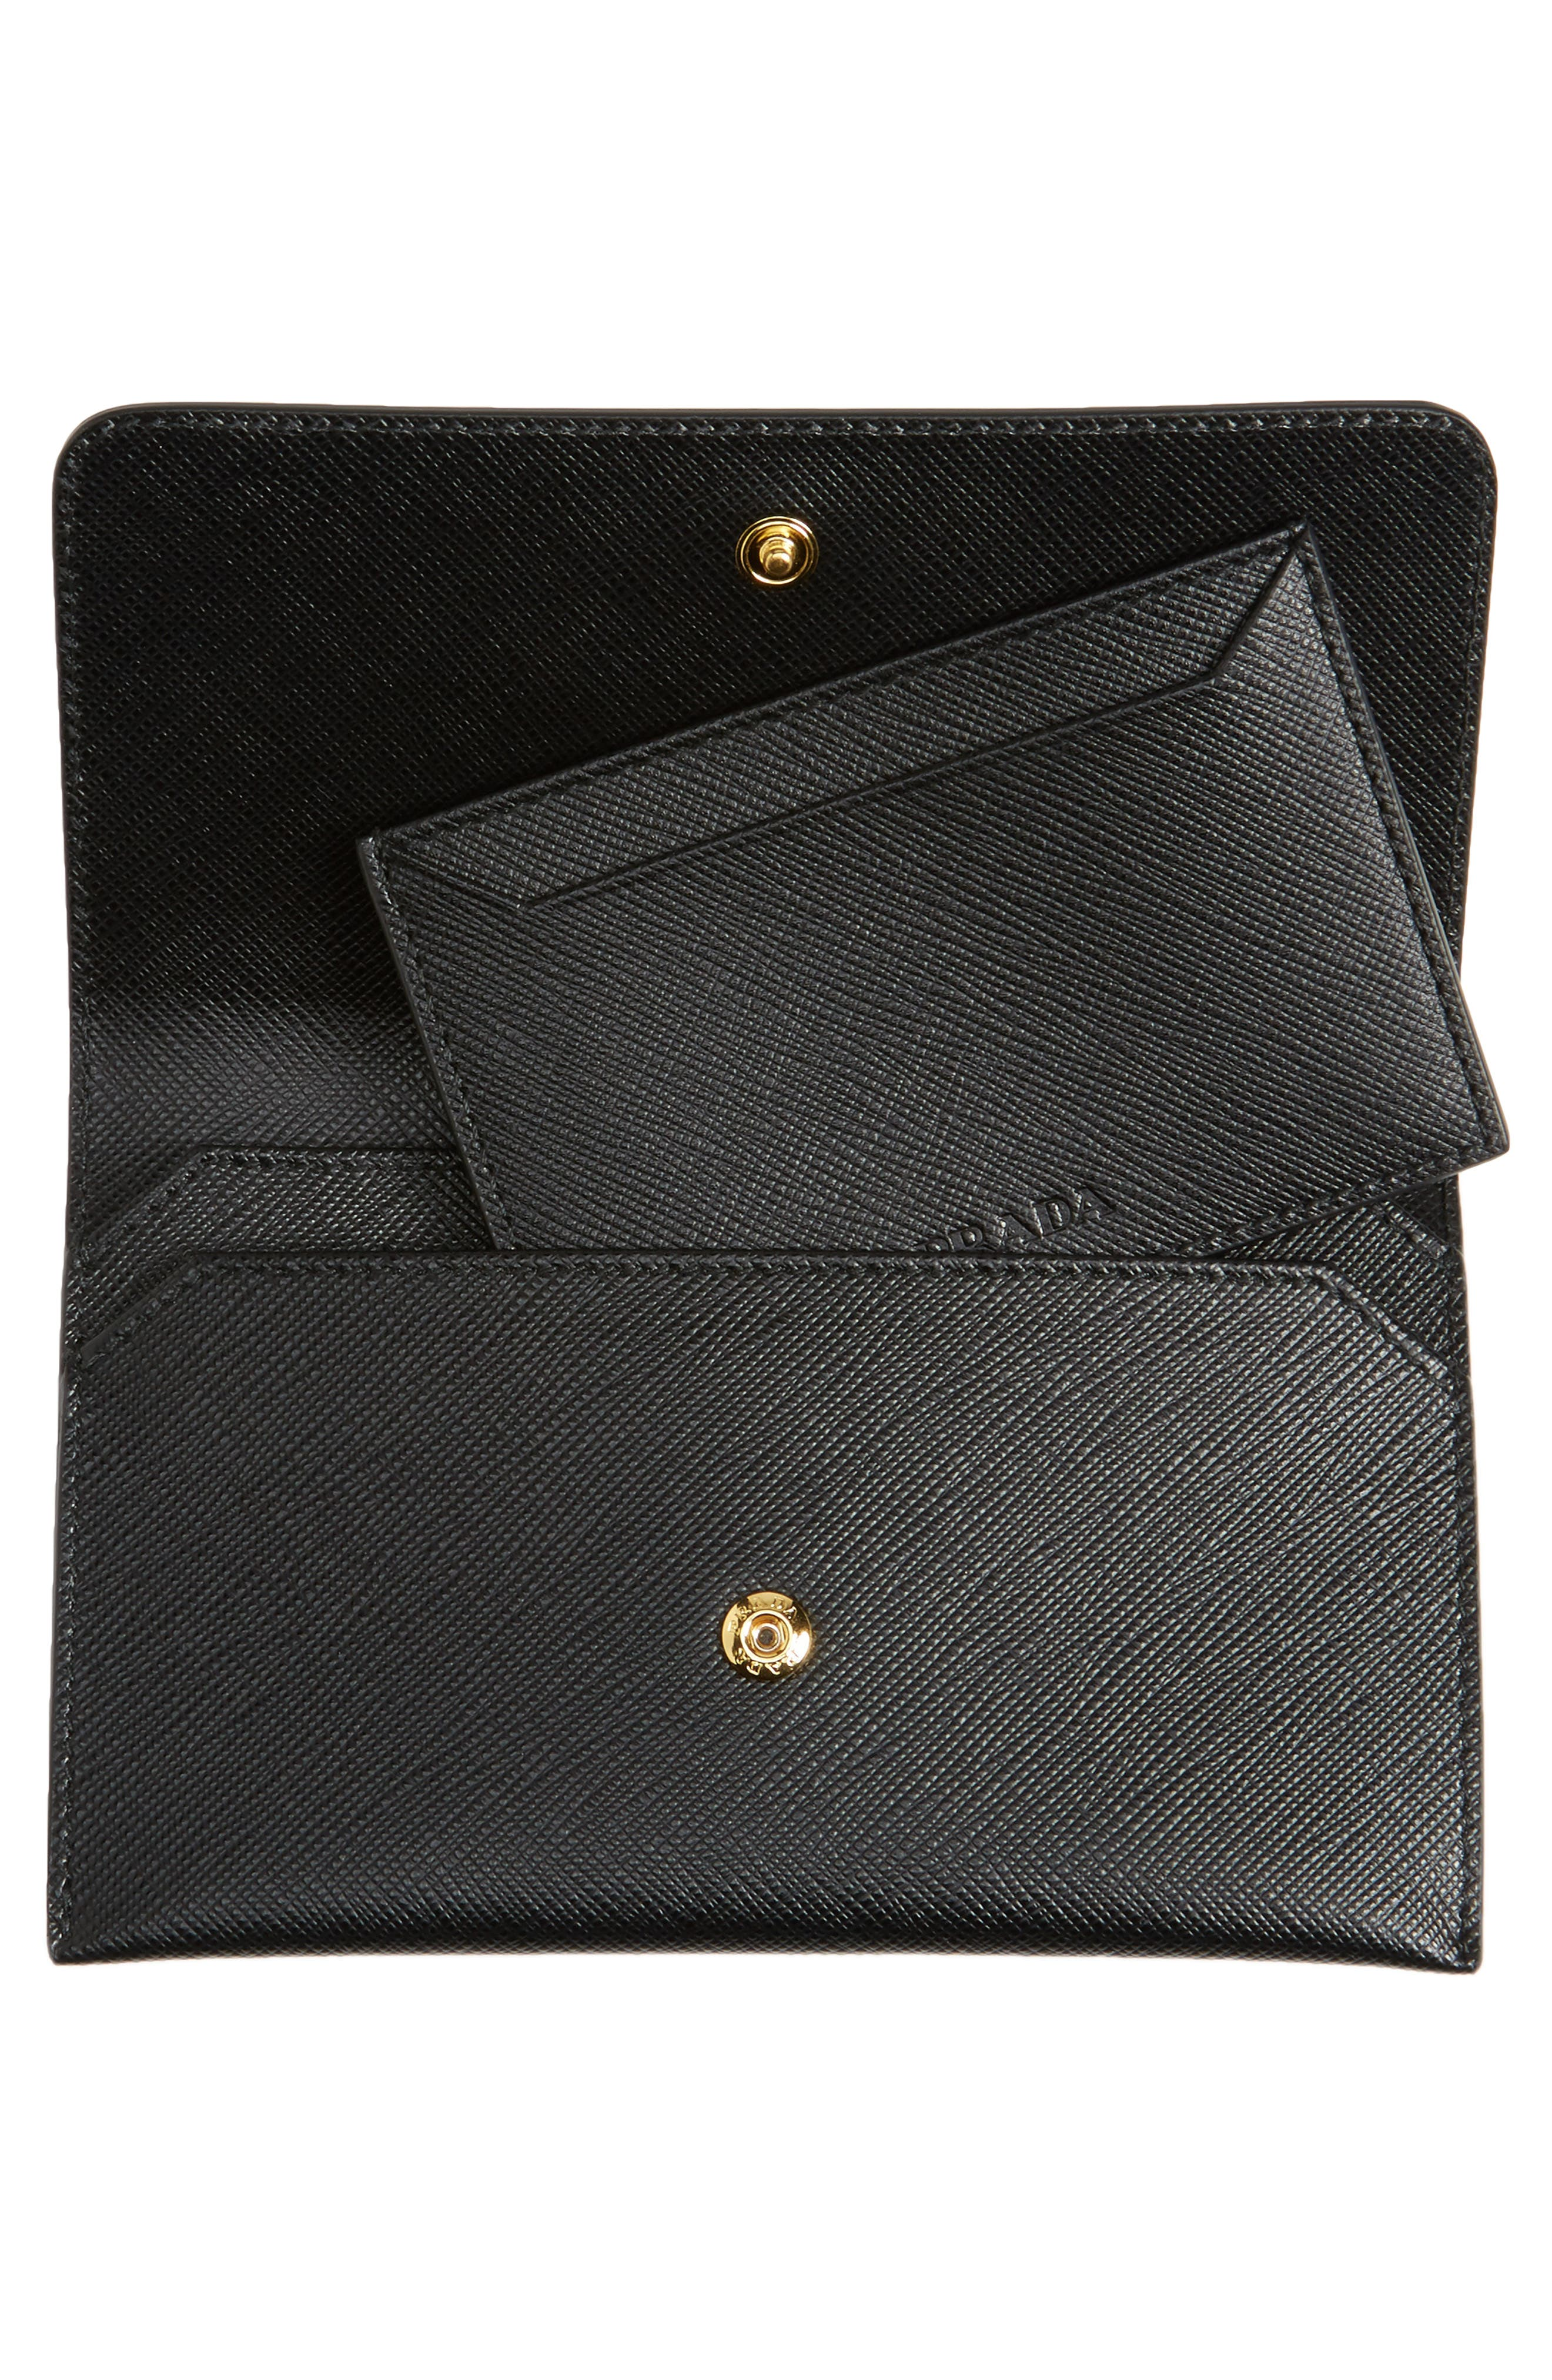 PRADA,                             Saffiano Leather Wallet,                             Alternate thumbnail 2, color,                             001